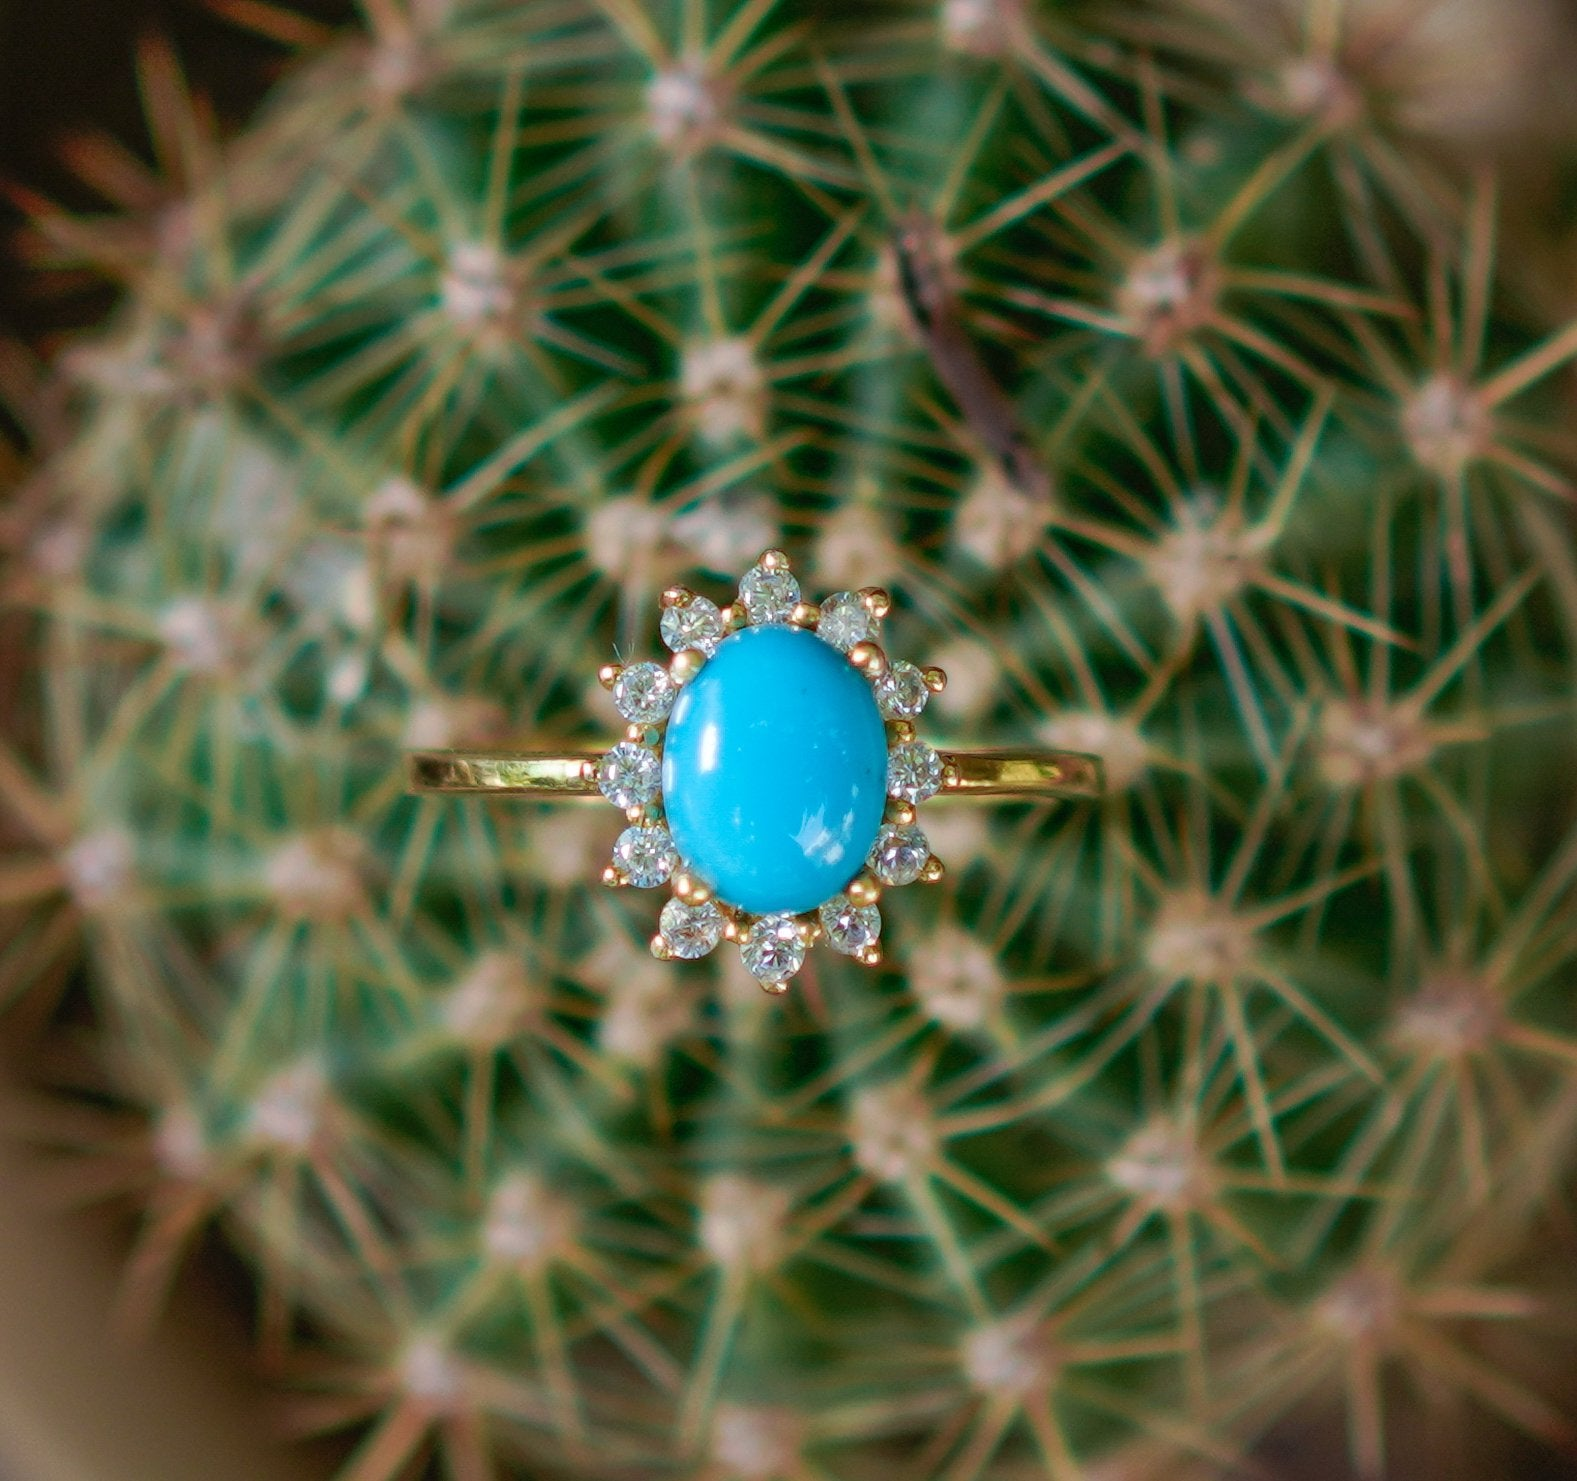 Vintage Inspired Sleeping Beauty Turquoise Halo Diamond Engagement Ring AR-2090 - Its Ambra